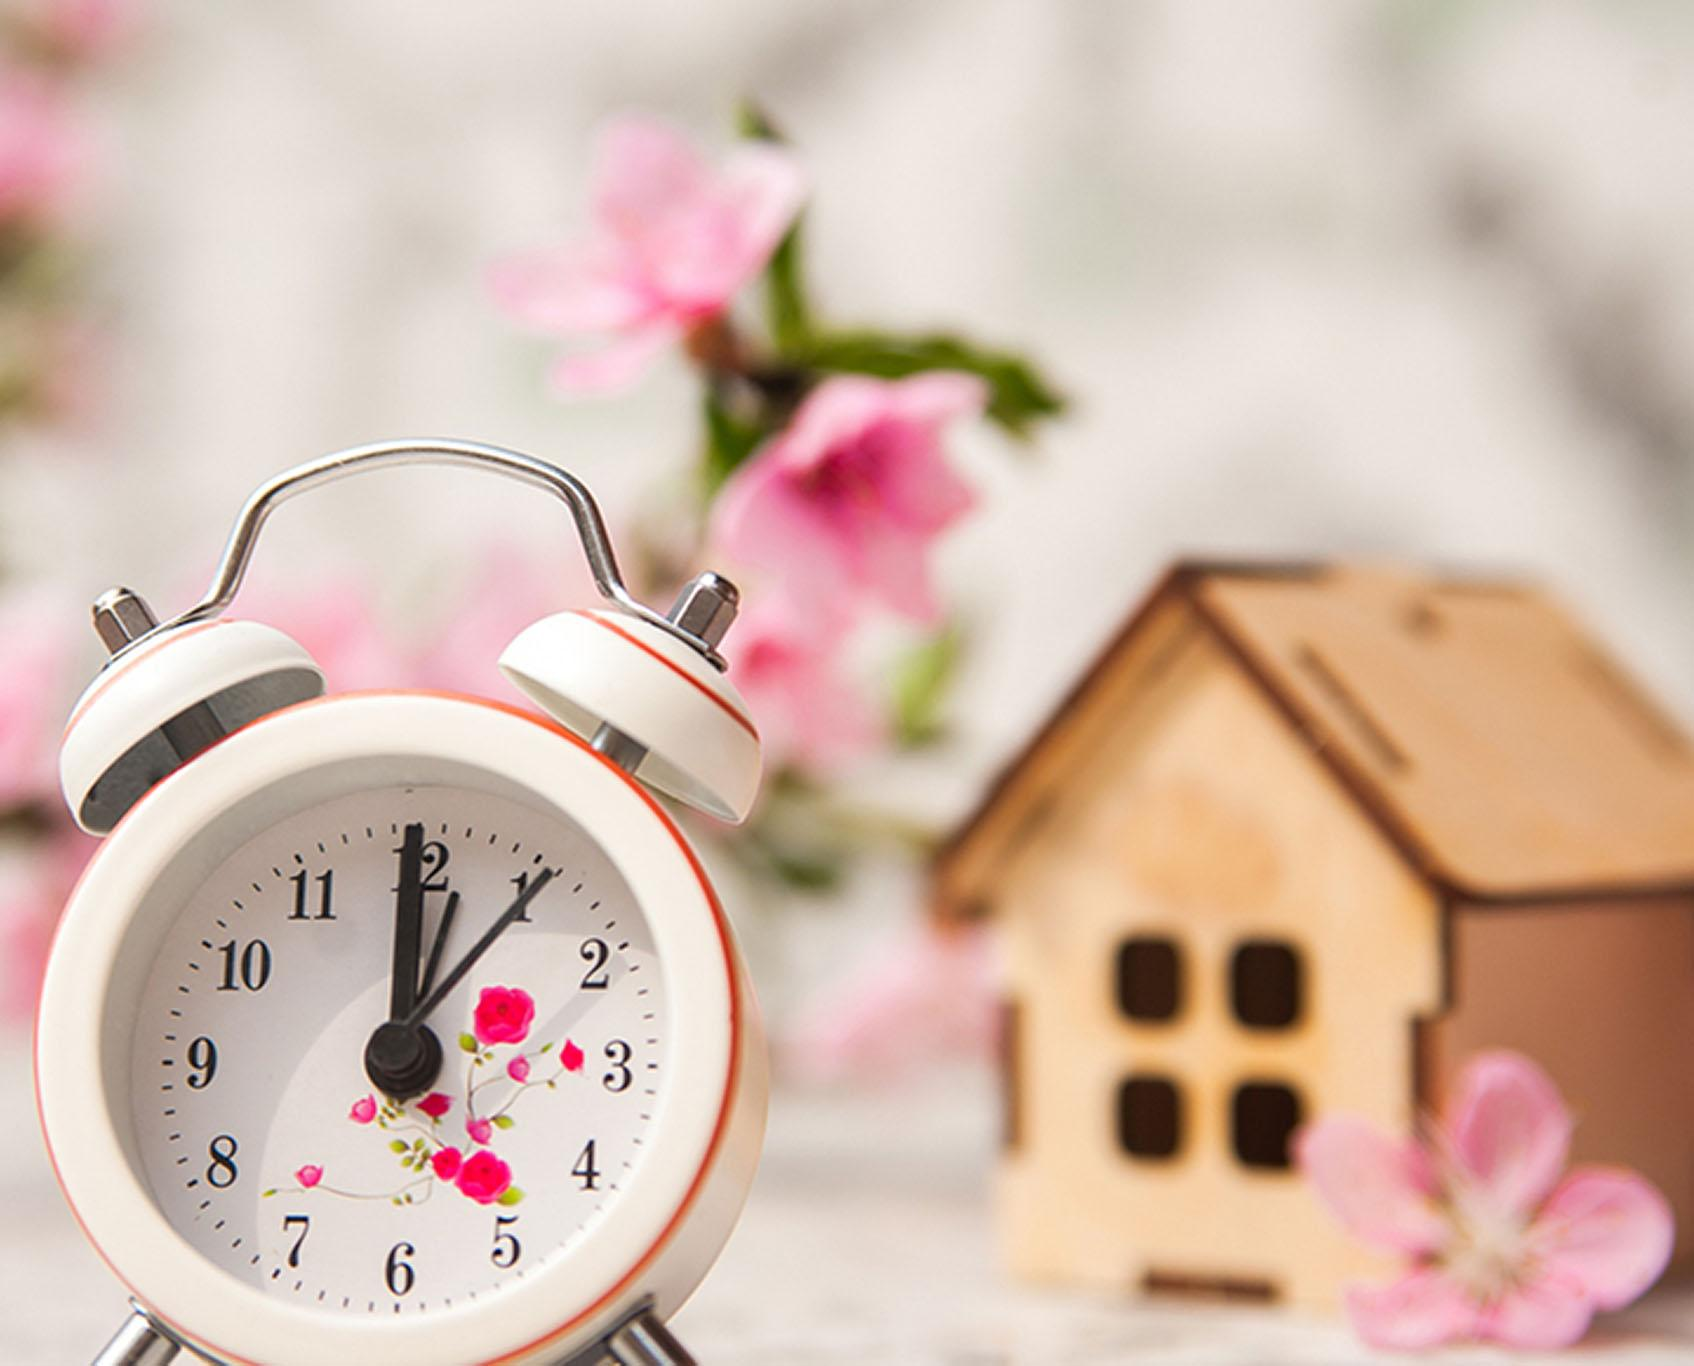 alarm clock with birdhouse in background